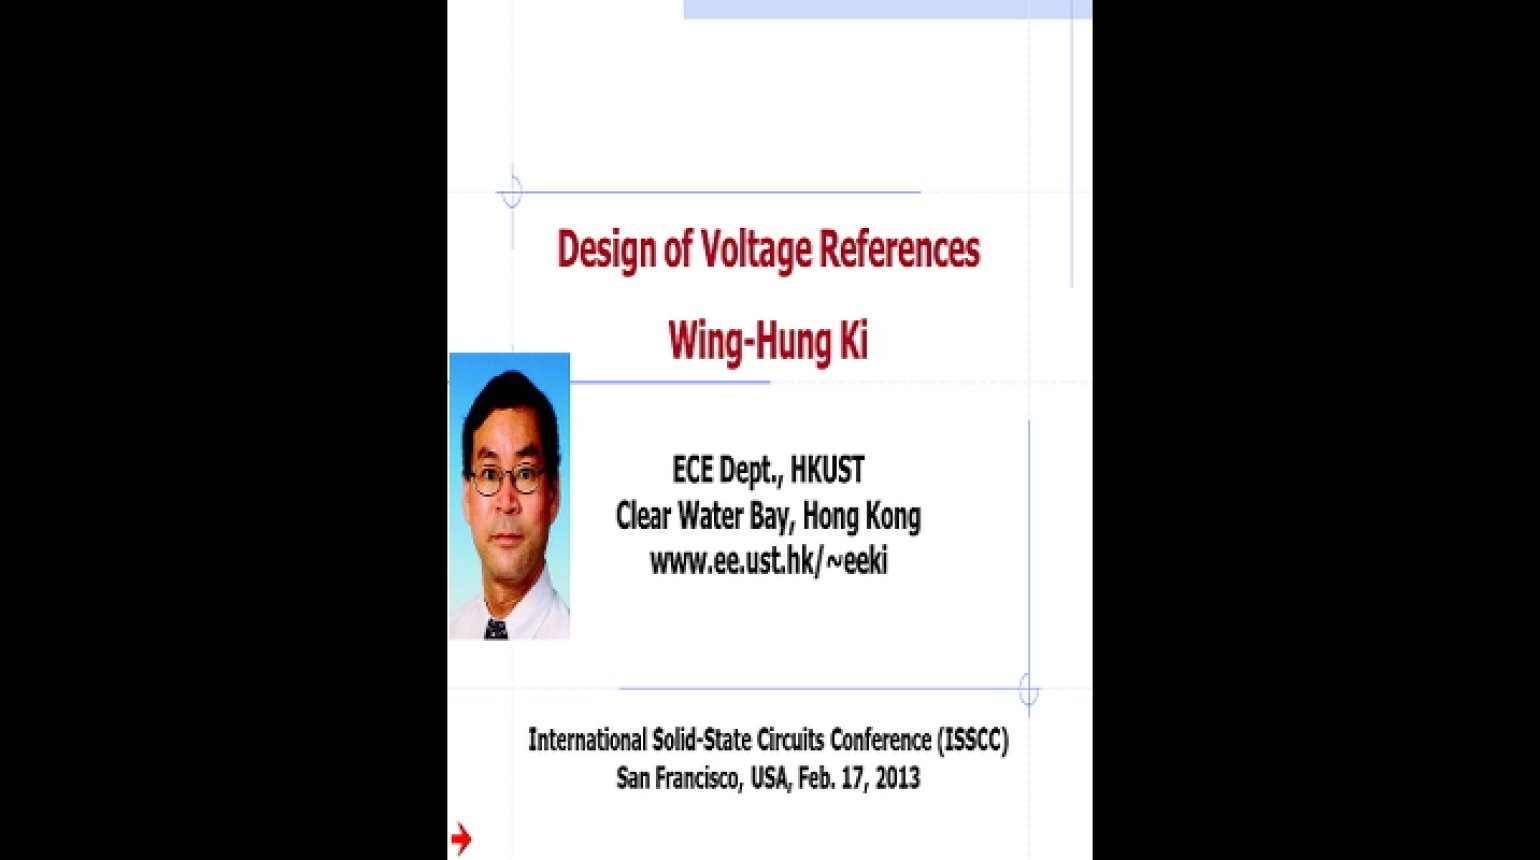 Design of Voltage References Video